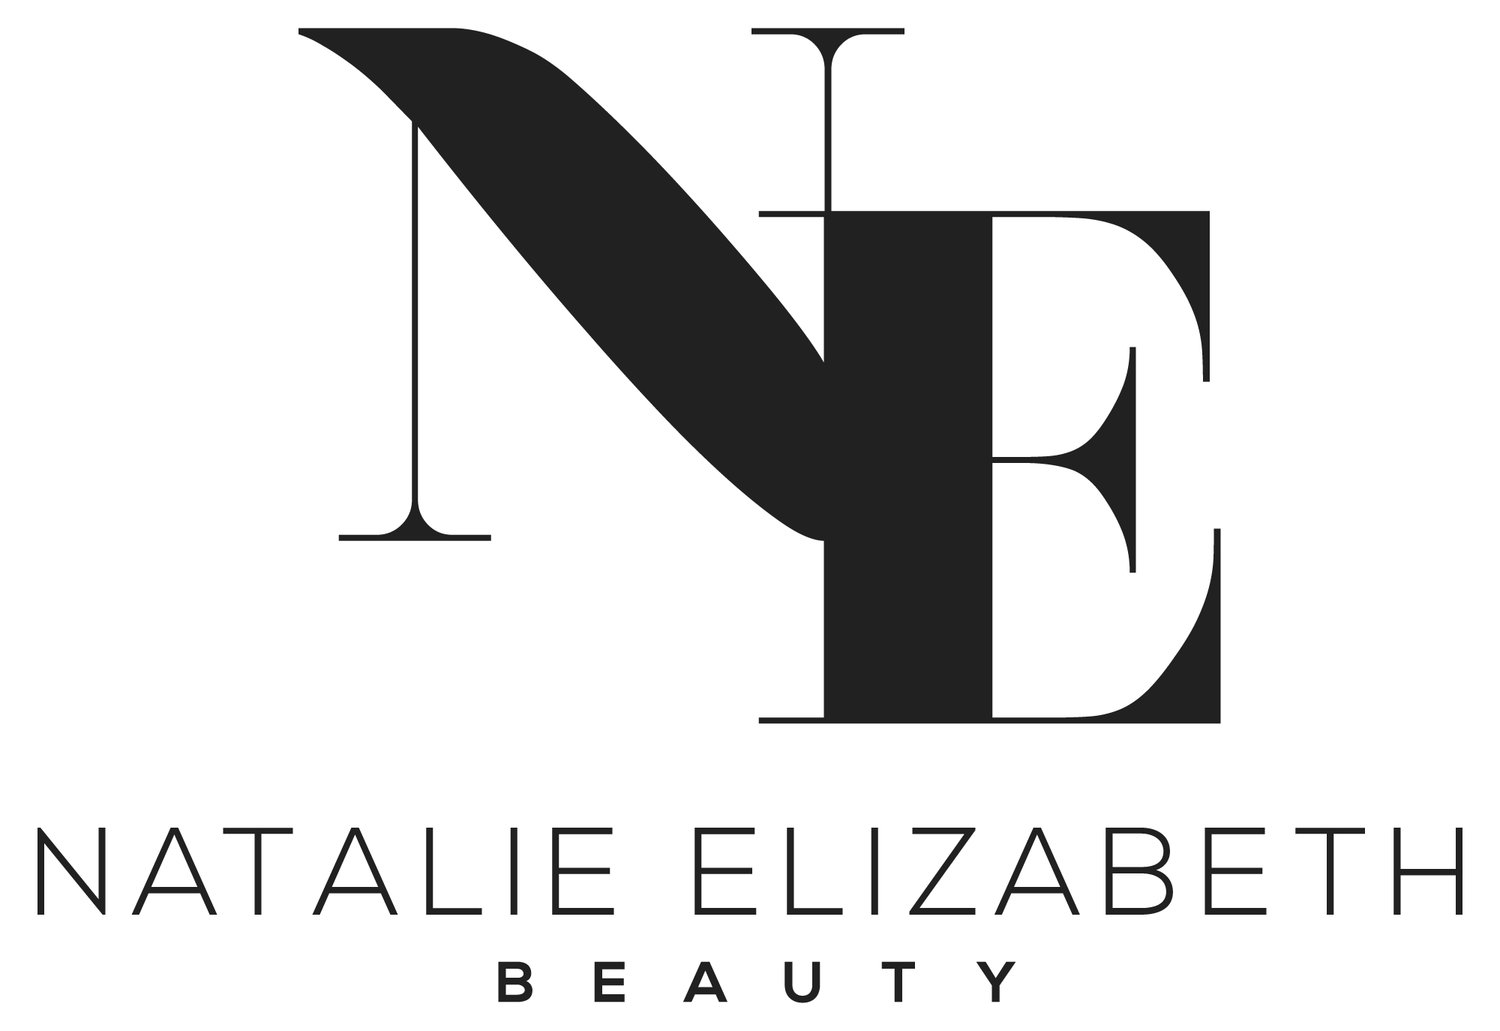 Natalie Elizabeth Beauty